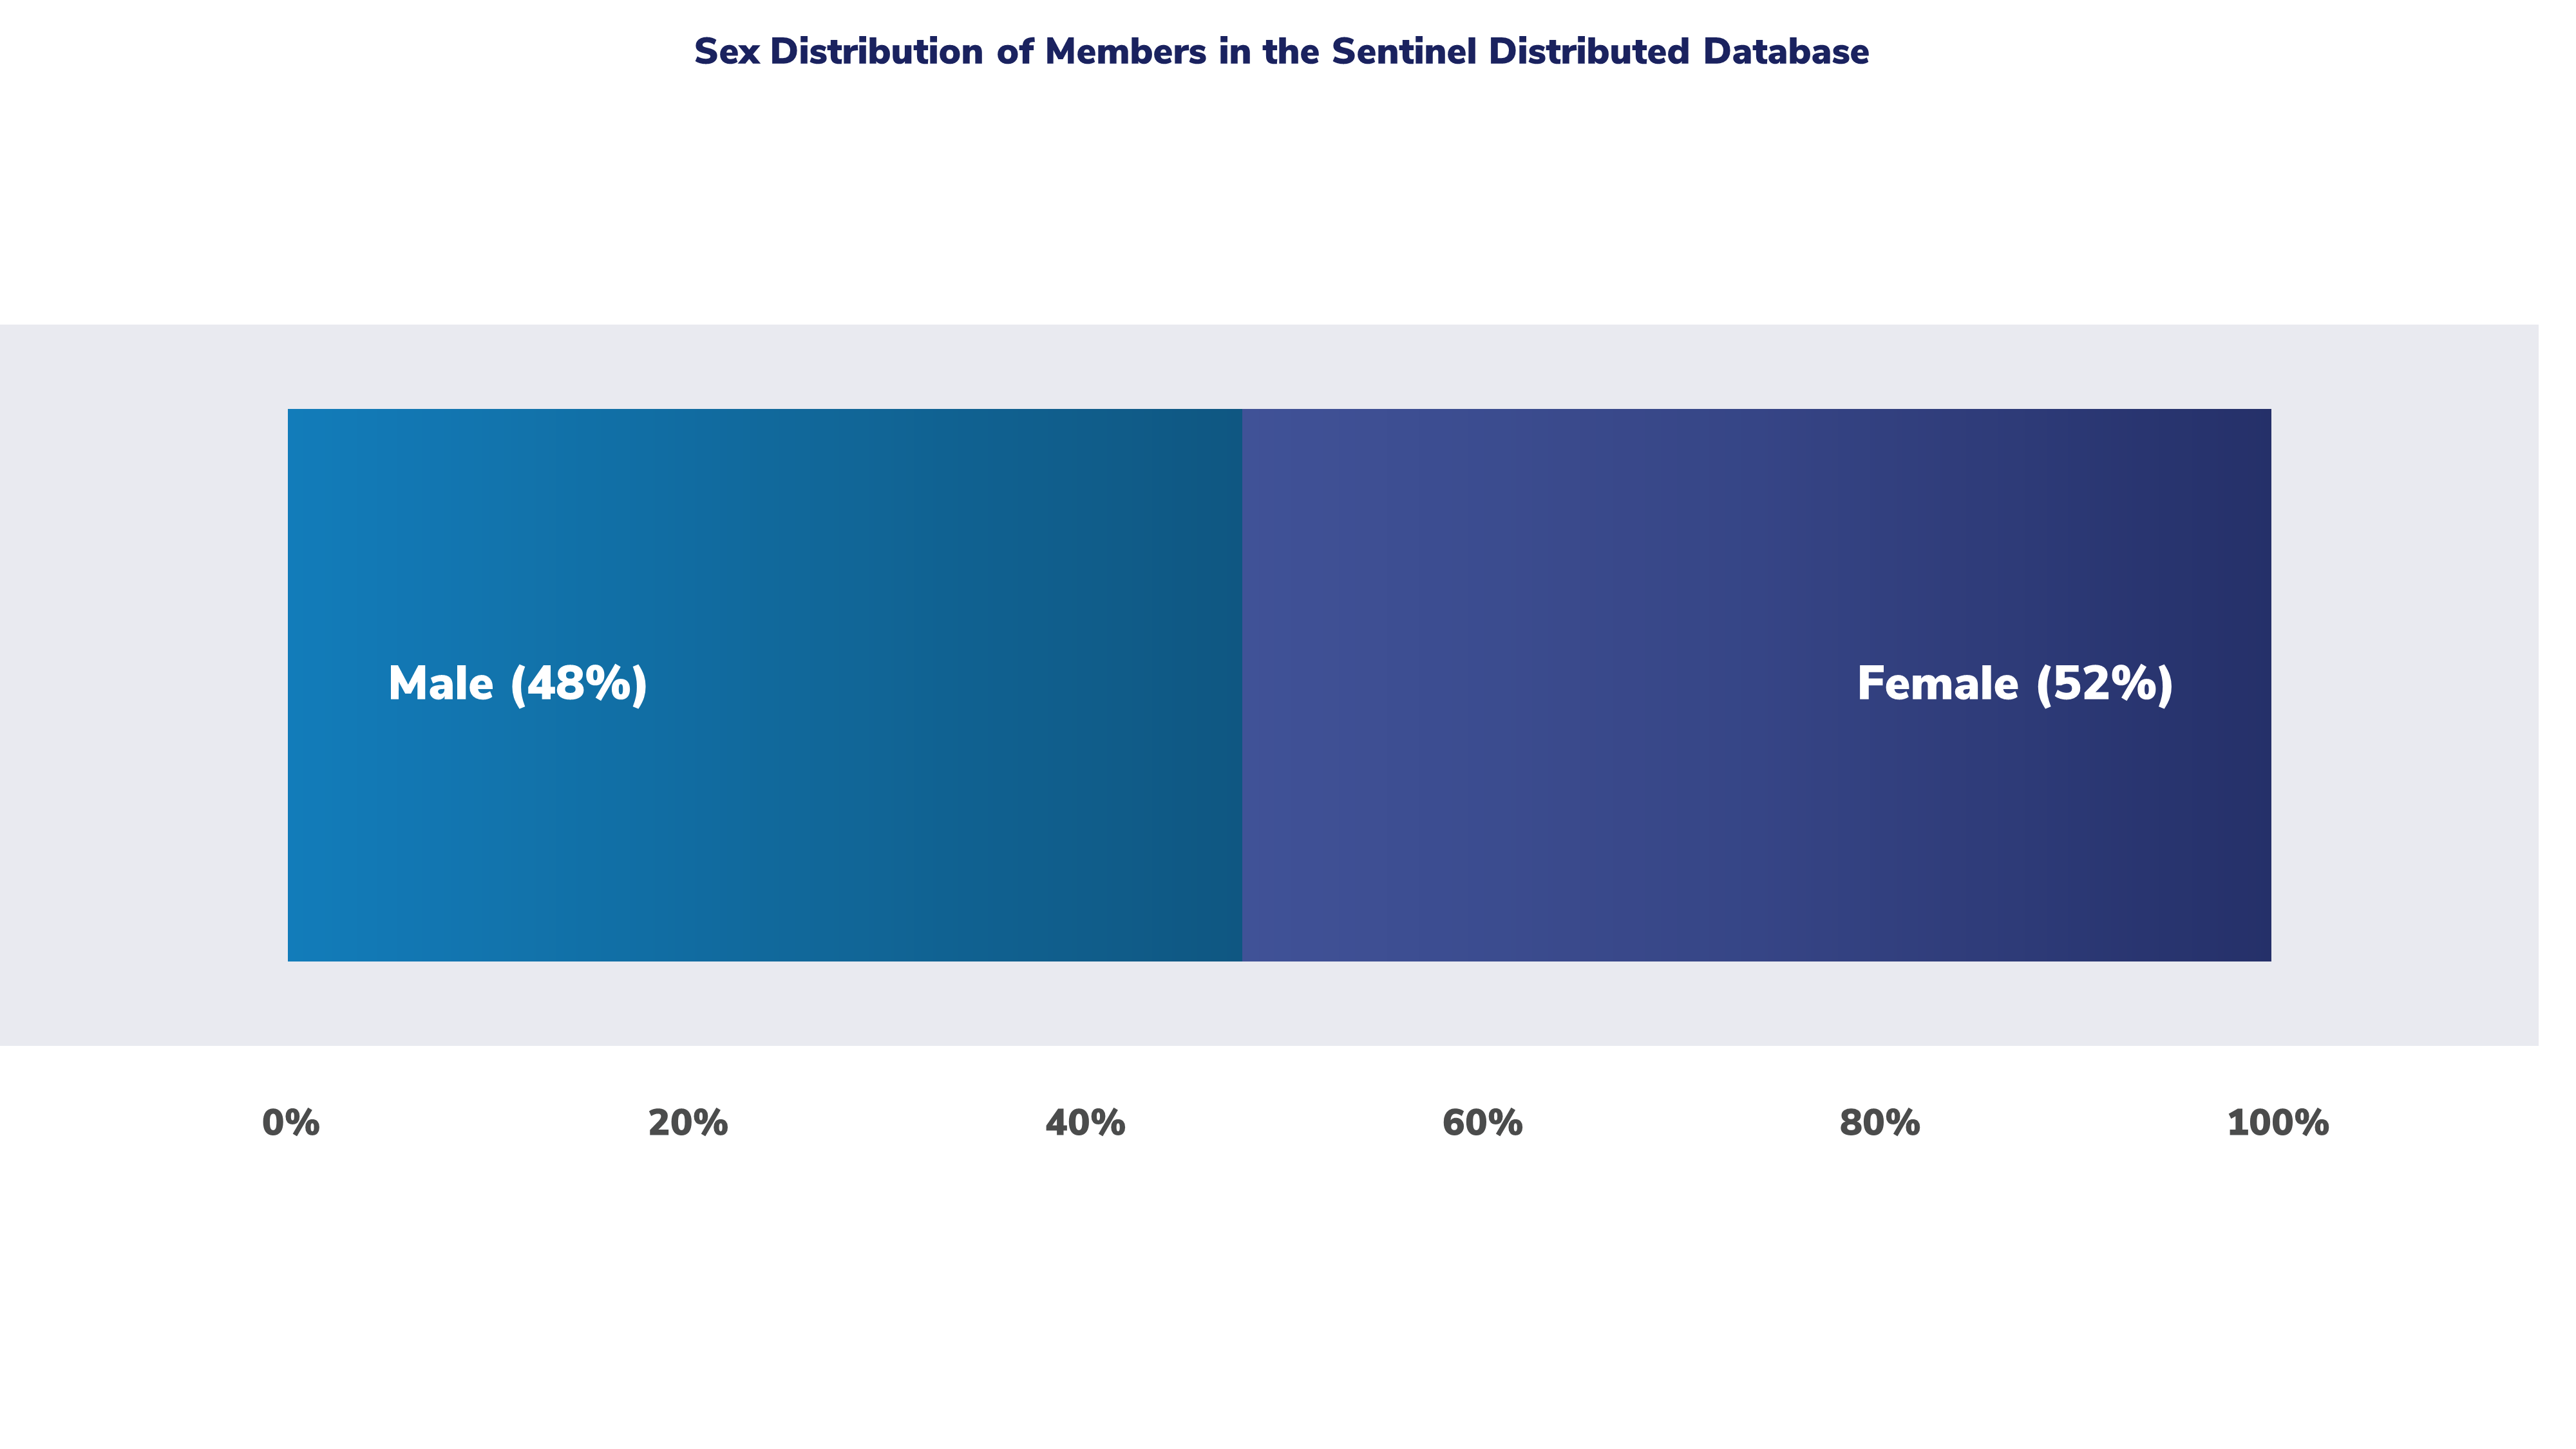 This graph shows the distribution of sex in the Sentinel Distributed Database among those with medical and drug coverage.